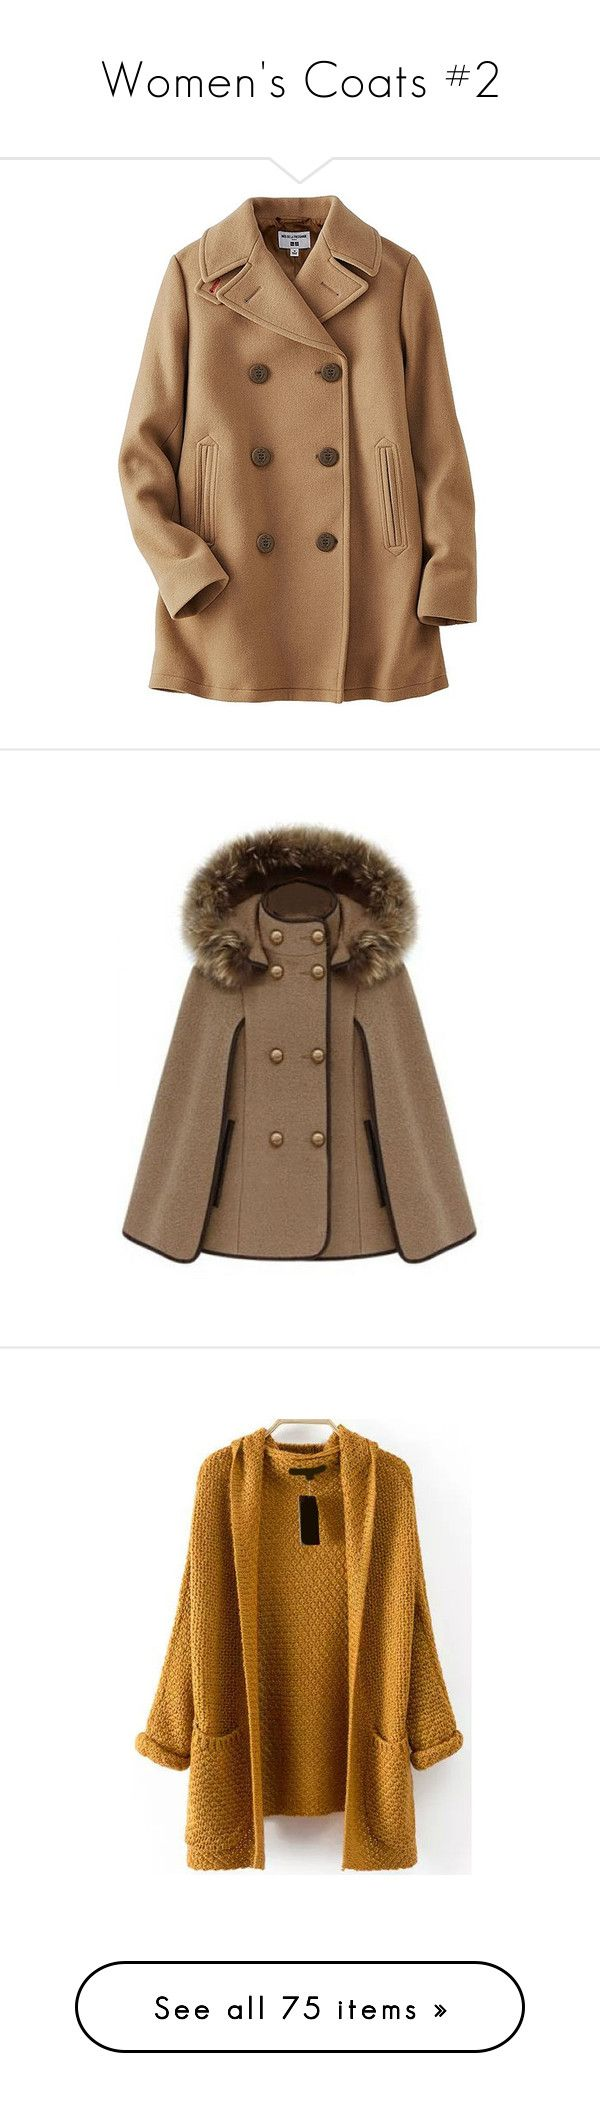 """Women's Coats #2"" by nathalialopes-1 ❤ liked on Polyvore featuring outerwear, coats, jackets, coats & jackets, pea coat, uniqlo peacoat, wool blend coat, pea jacket, wool blend peacoat and cape"